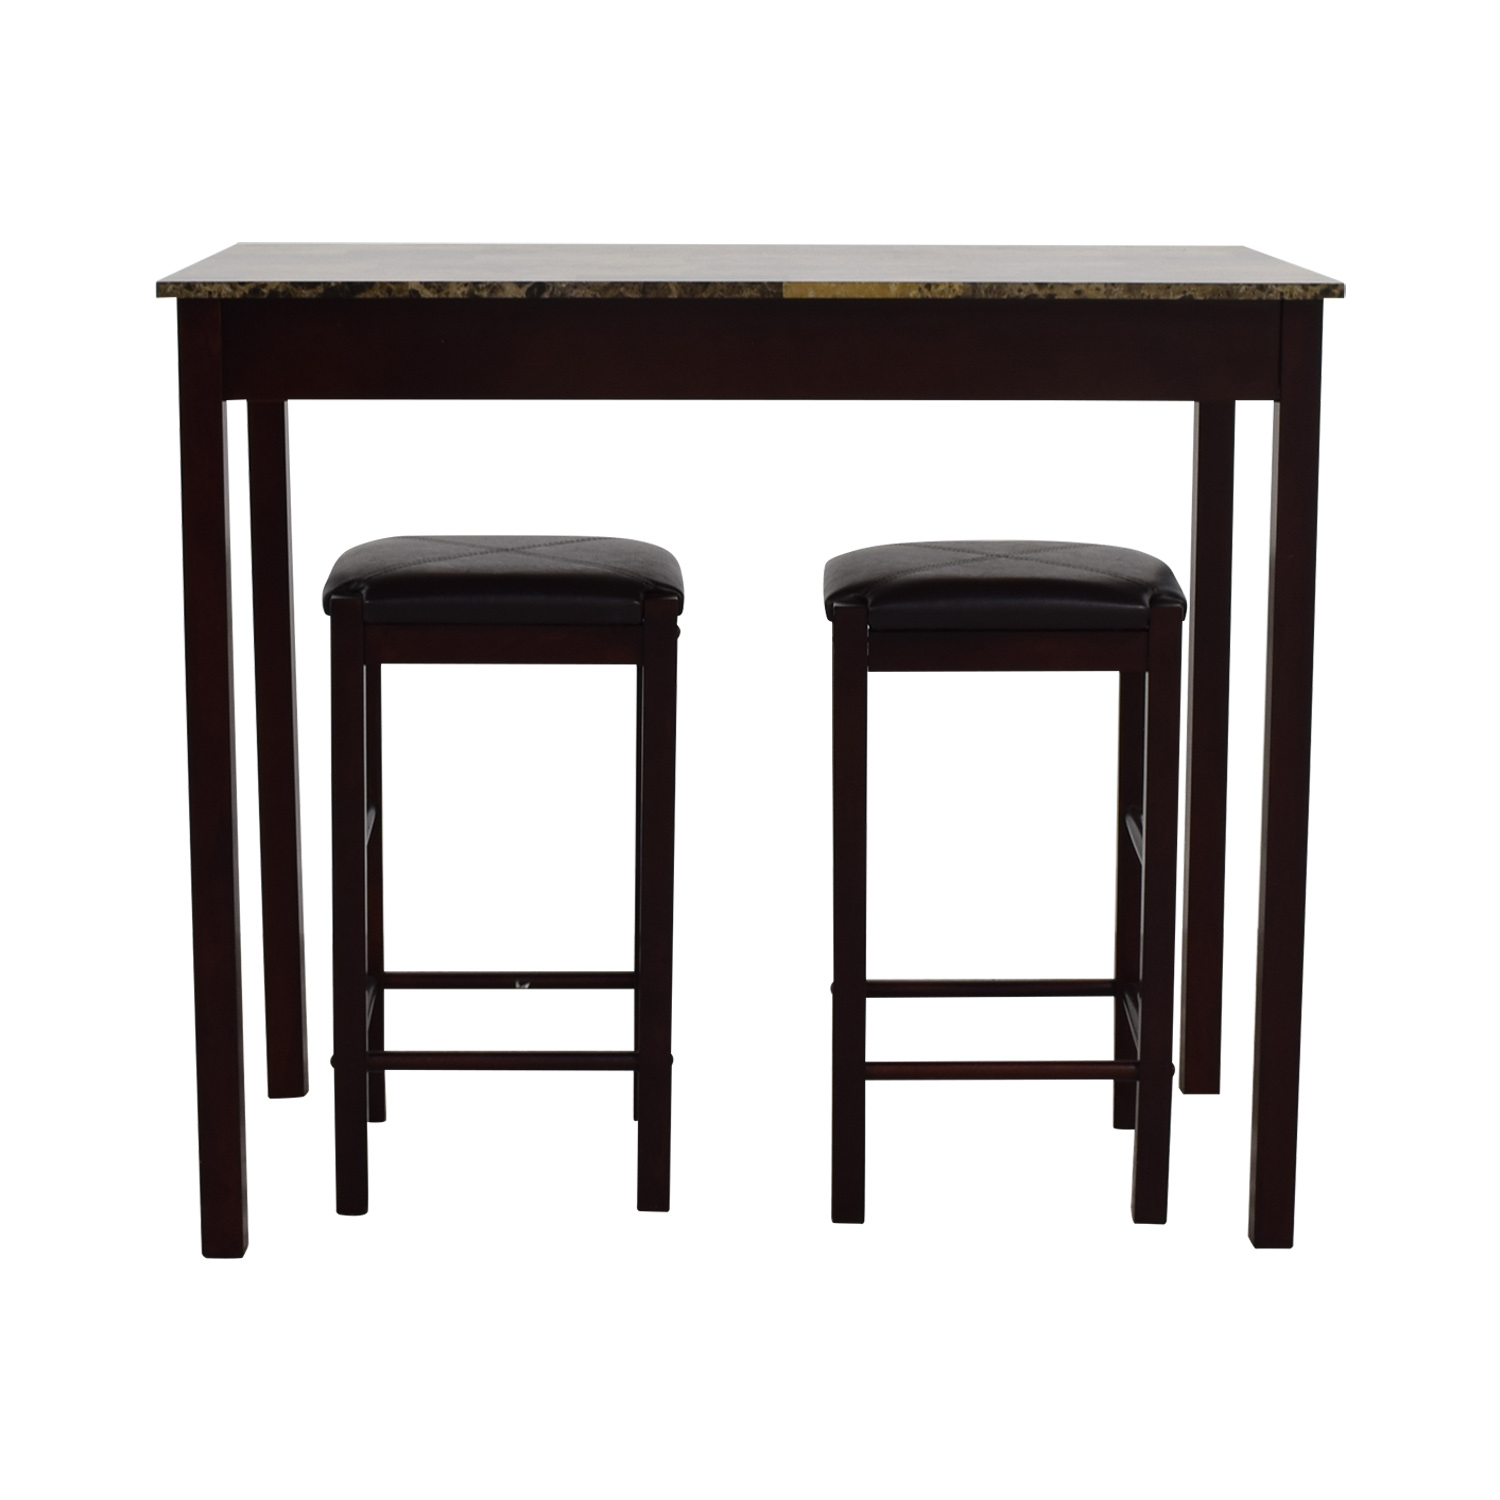 Linon Home Decor Linon Home Decor Tavern Marble Table and Stools second hand